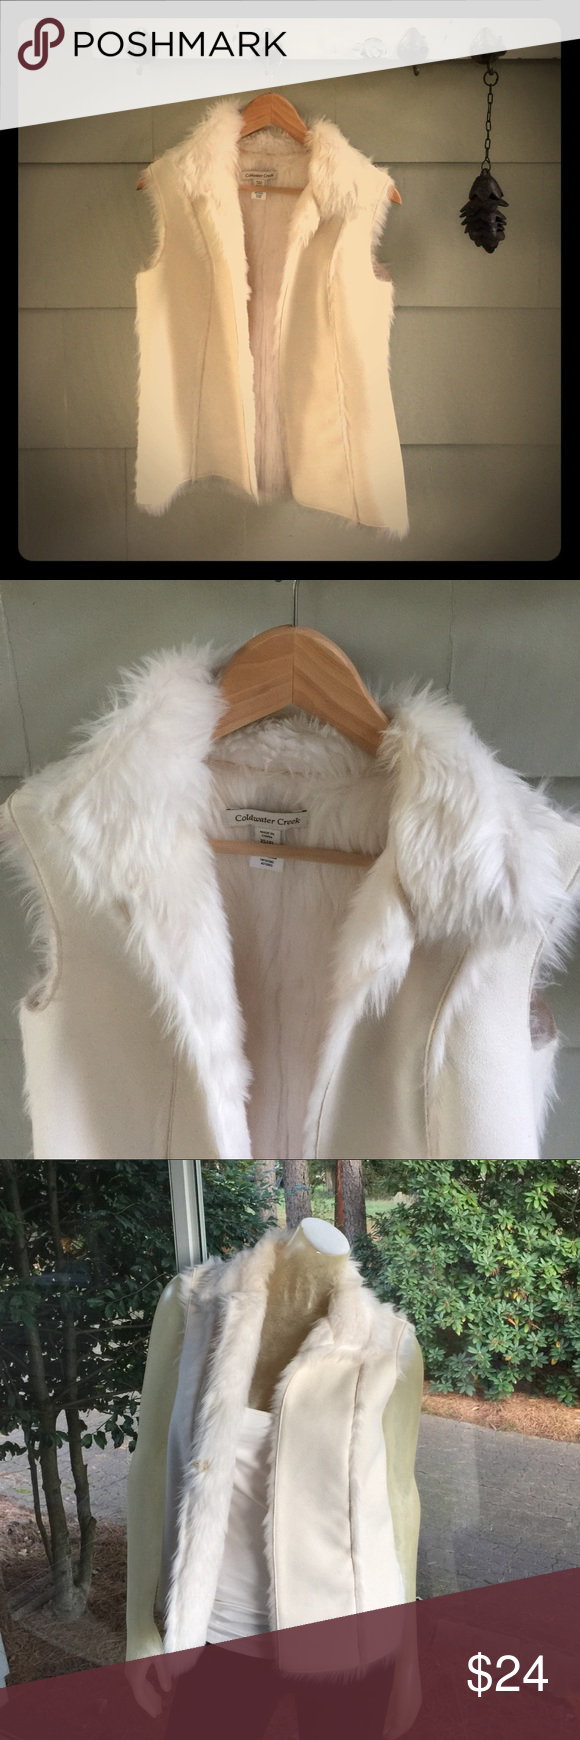 Coldwater Creek Faux Shearling Suede Vest Size XS Coldwater Creek Soft Shearling and Suede Vest (Faux--polyester and acrylic). Excellent condition. Size XS, fits a 2-4 best, IMO. No trades, please. Coldwater Creek Jackets & Coats Vests